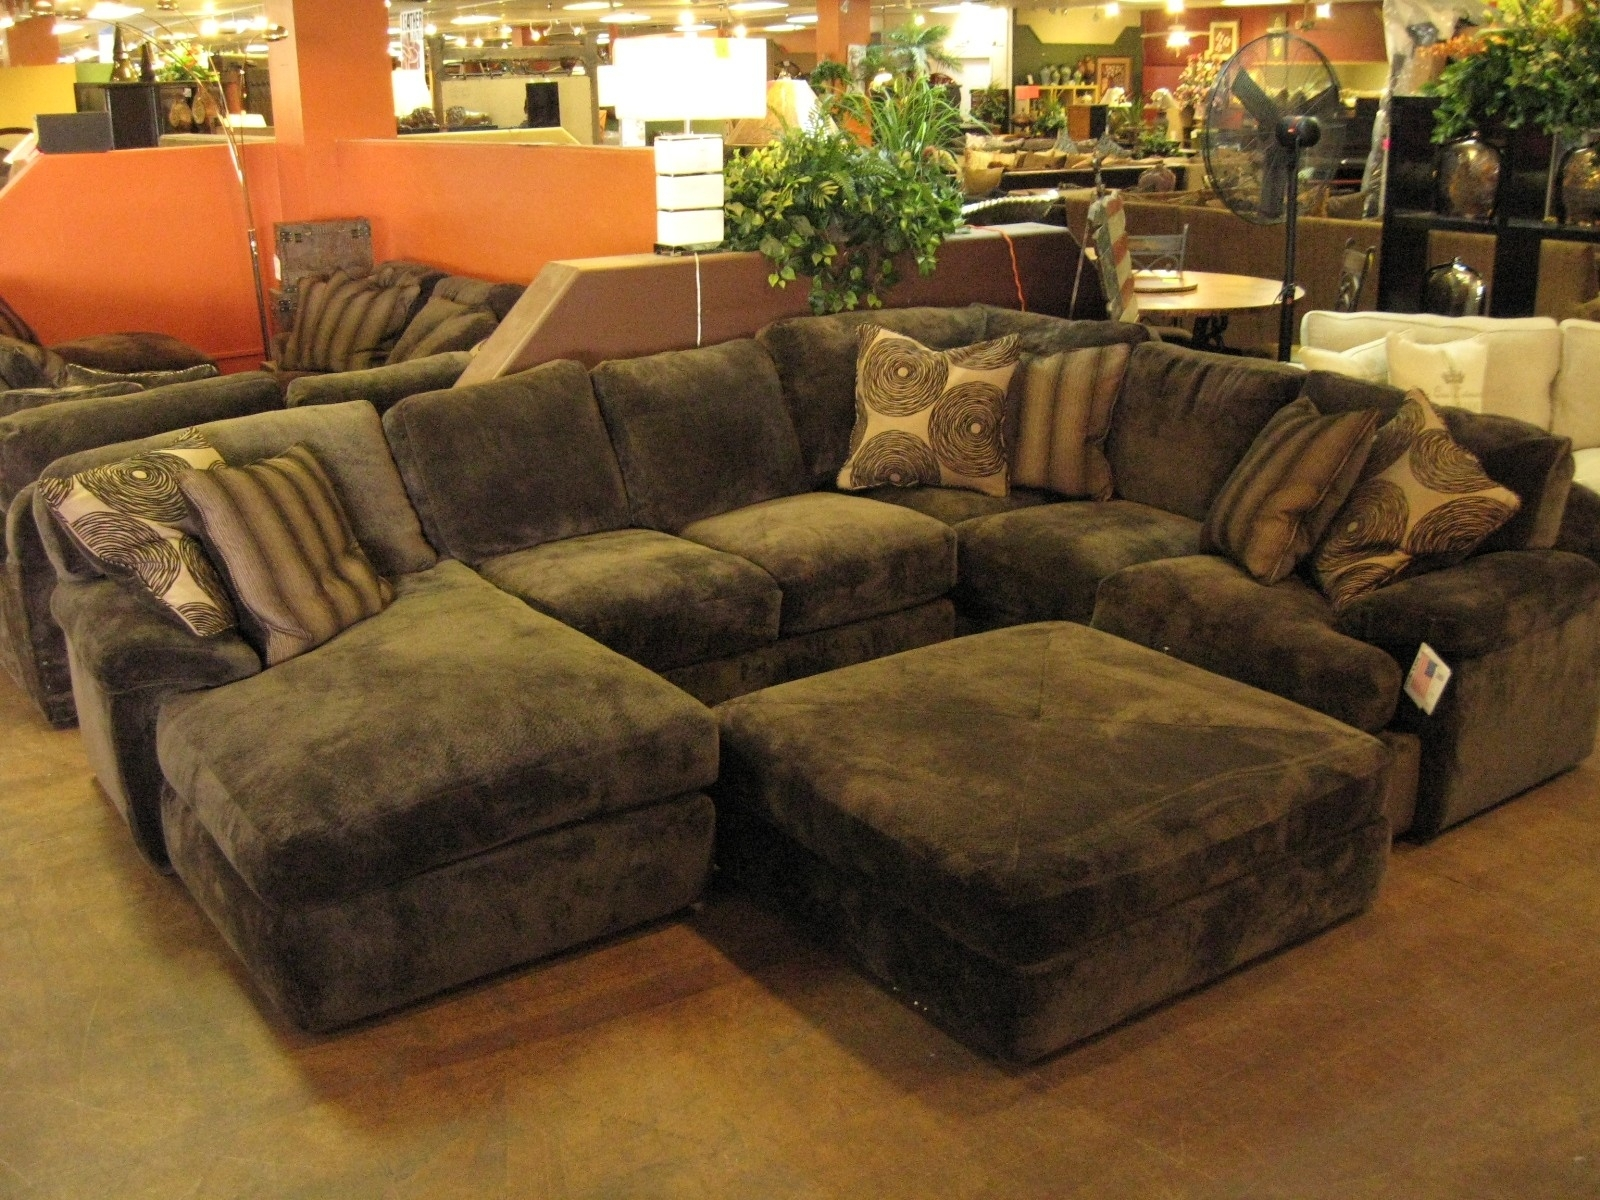 Cheap Sectional Sofas With Ottoman – Hotelsbacau Within Cheap Sectionals With Ottoman (Image 5 of 10)